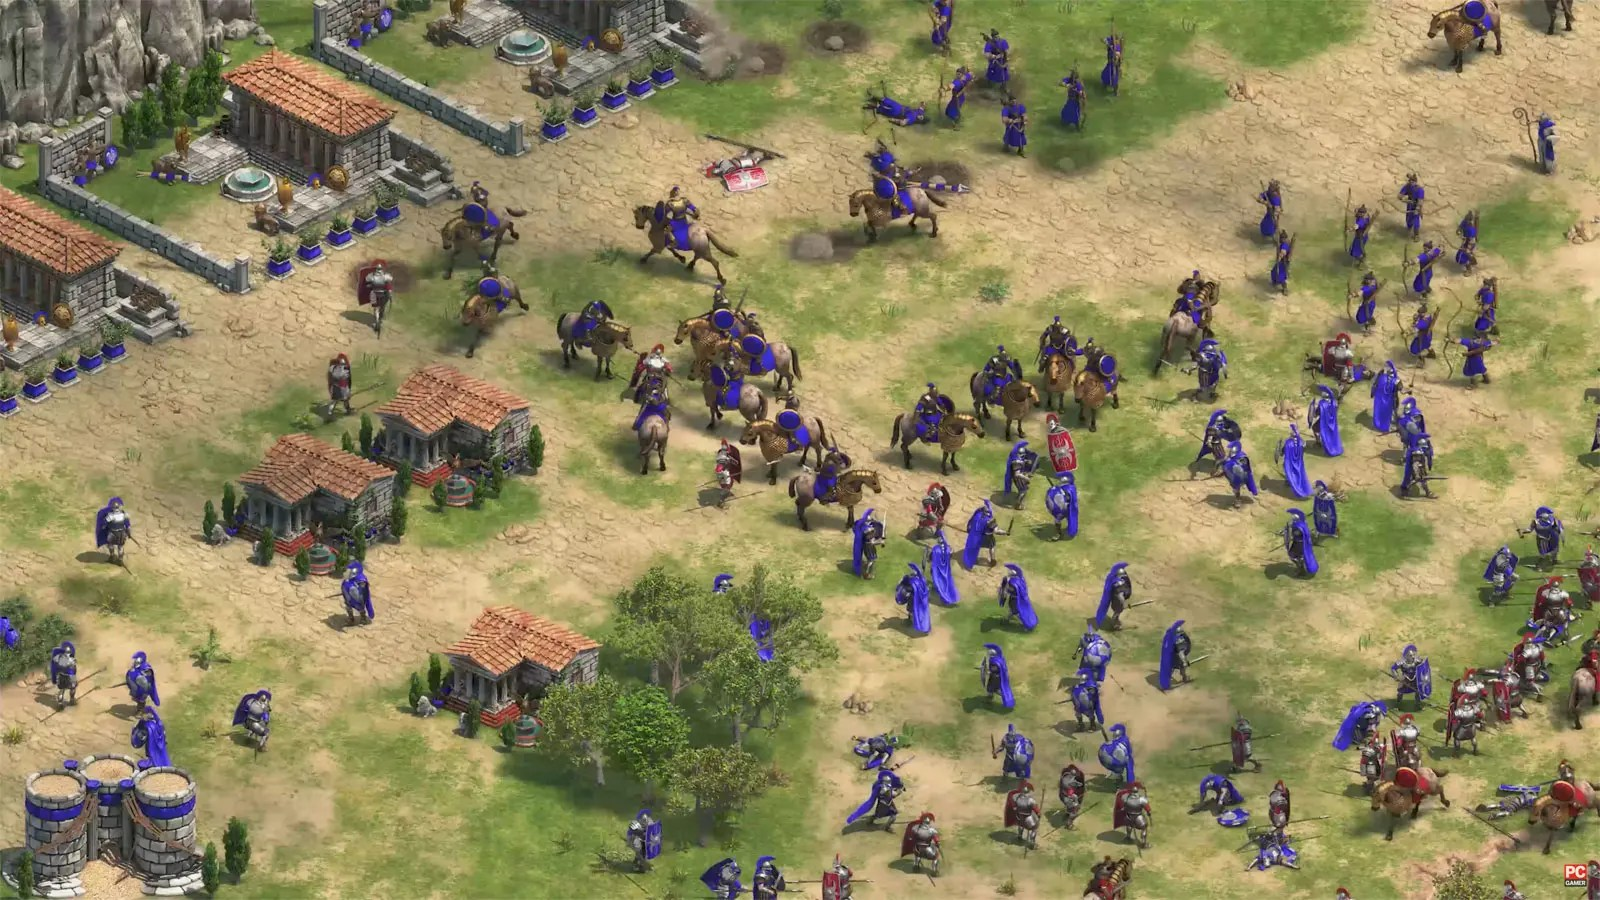 Total War Warhammer Wallpaper Hd Age Of Empires Definitive Edition Download